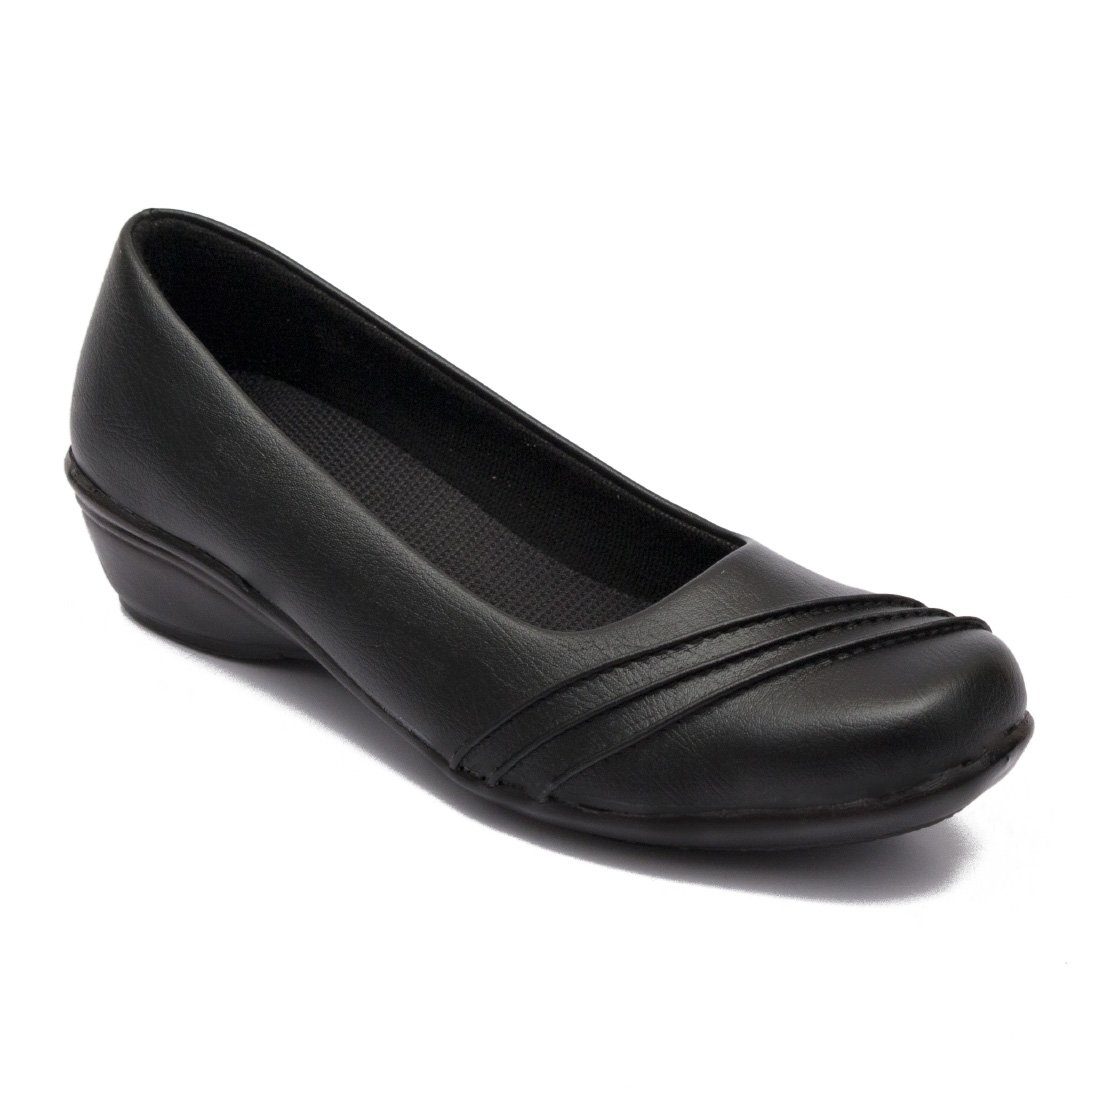 adjoi steps stylish formal shoes for